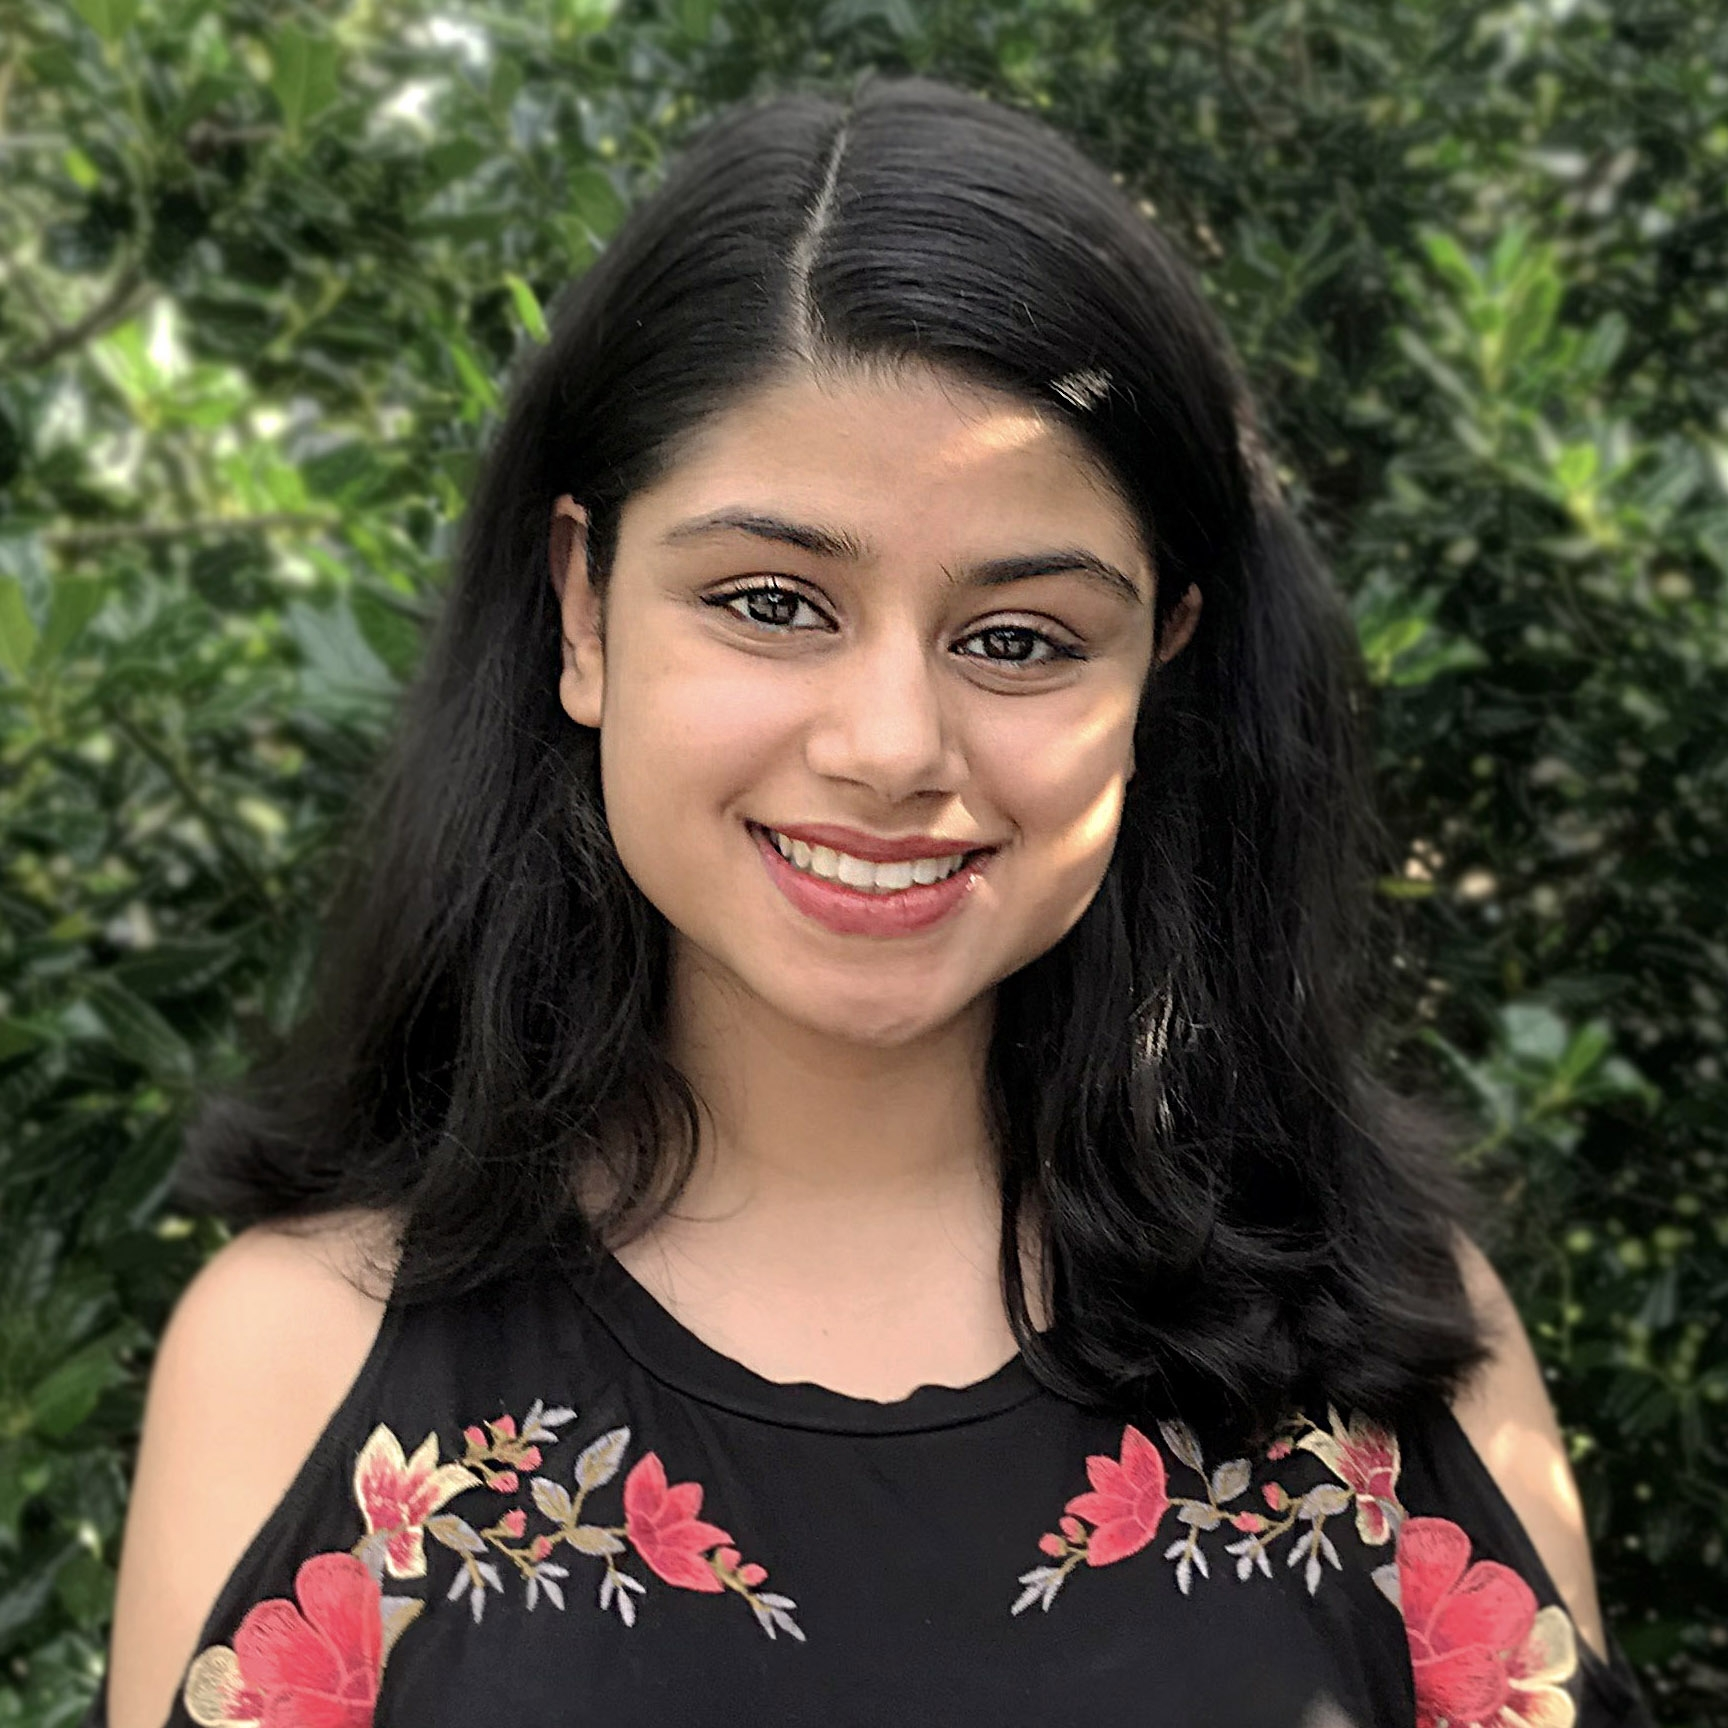 Programming    Hackathon Coordinator   Anushka Dheer is a rising senior at Alpharetta High School, and she aims to become an oncologist.